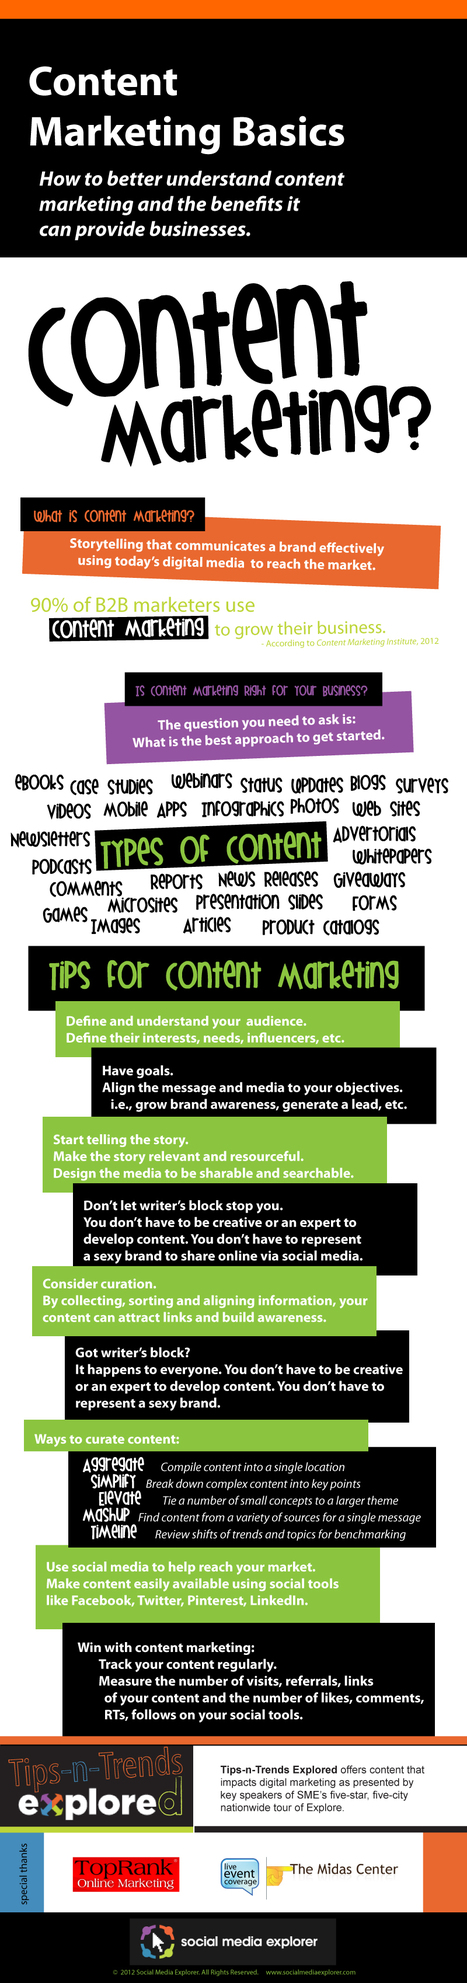 Content Marketing Basics [INFOGRAPHIC]   Time to Learn   Scoop.it